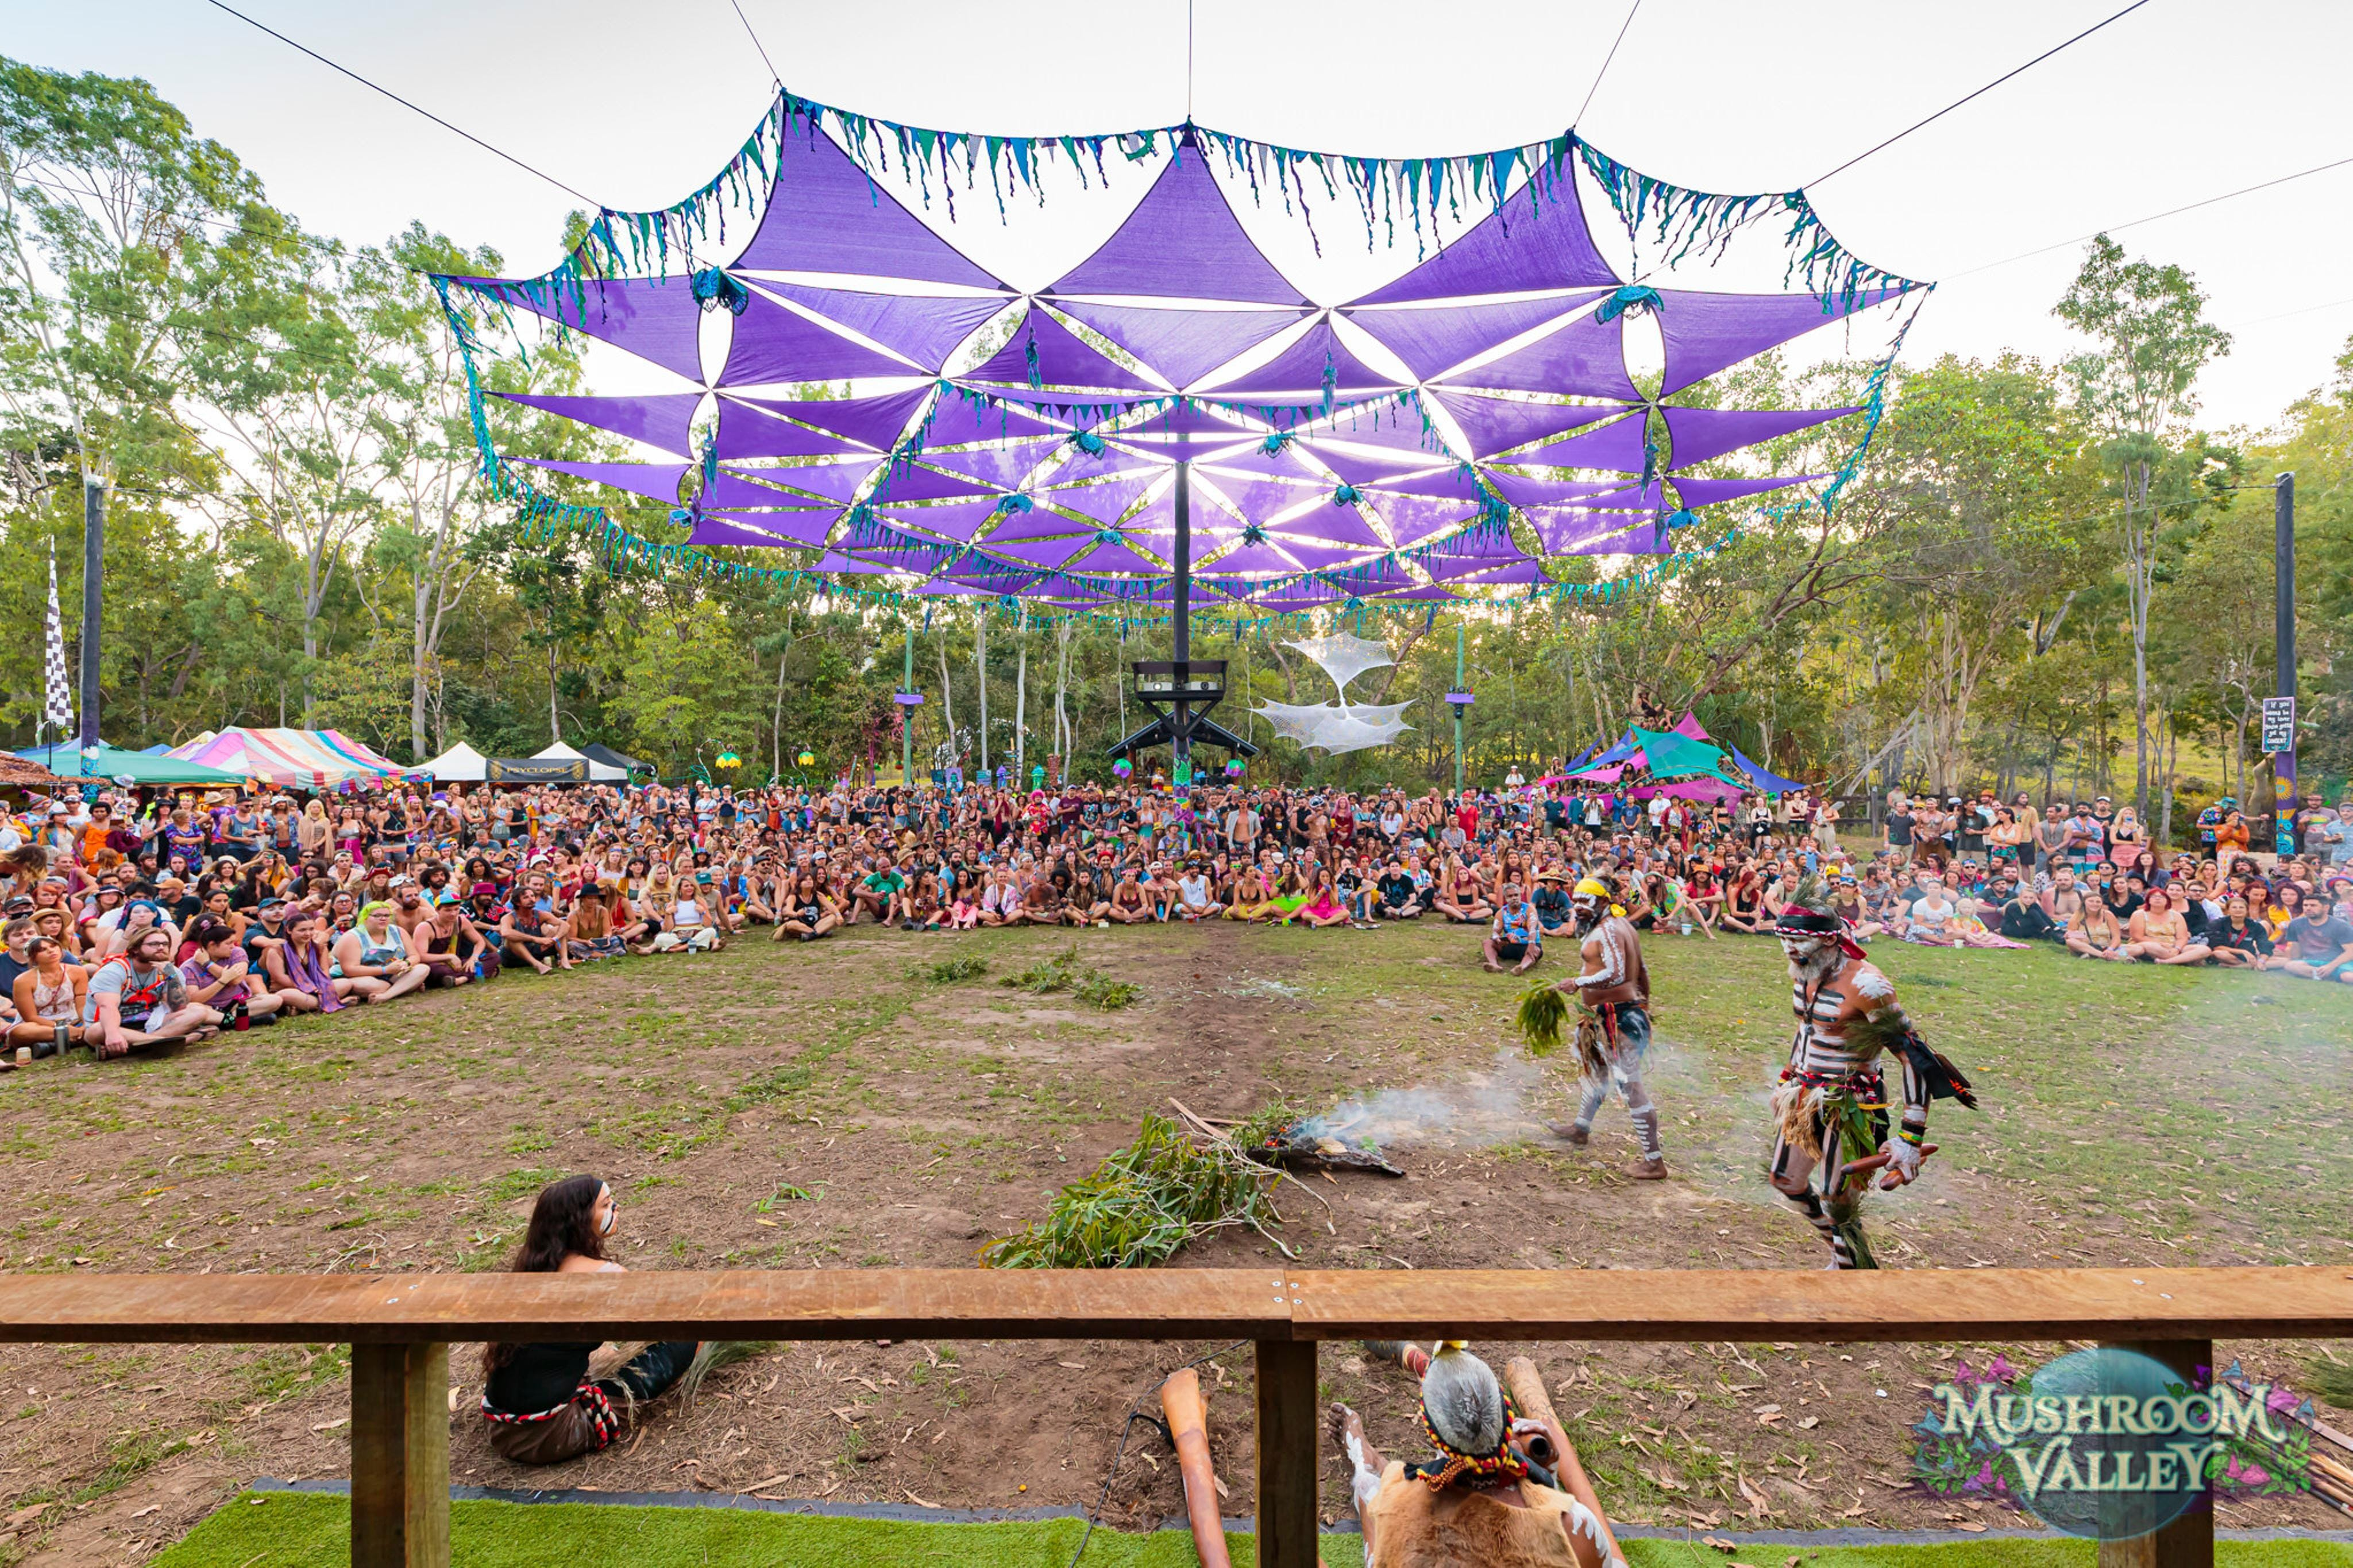 Mushroom Valley Festival - Tourism Cairns